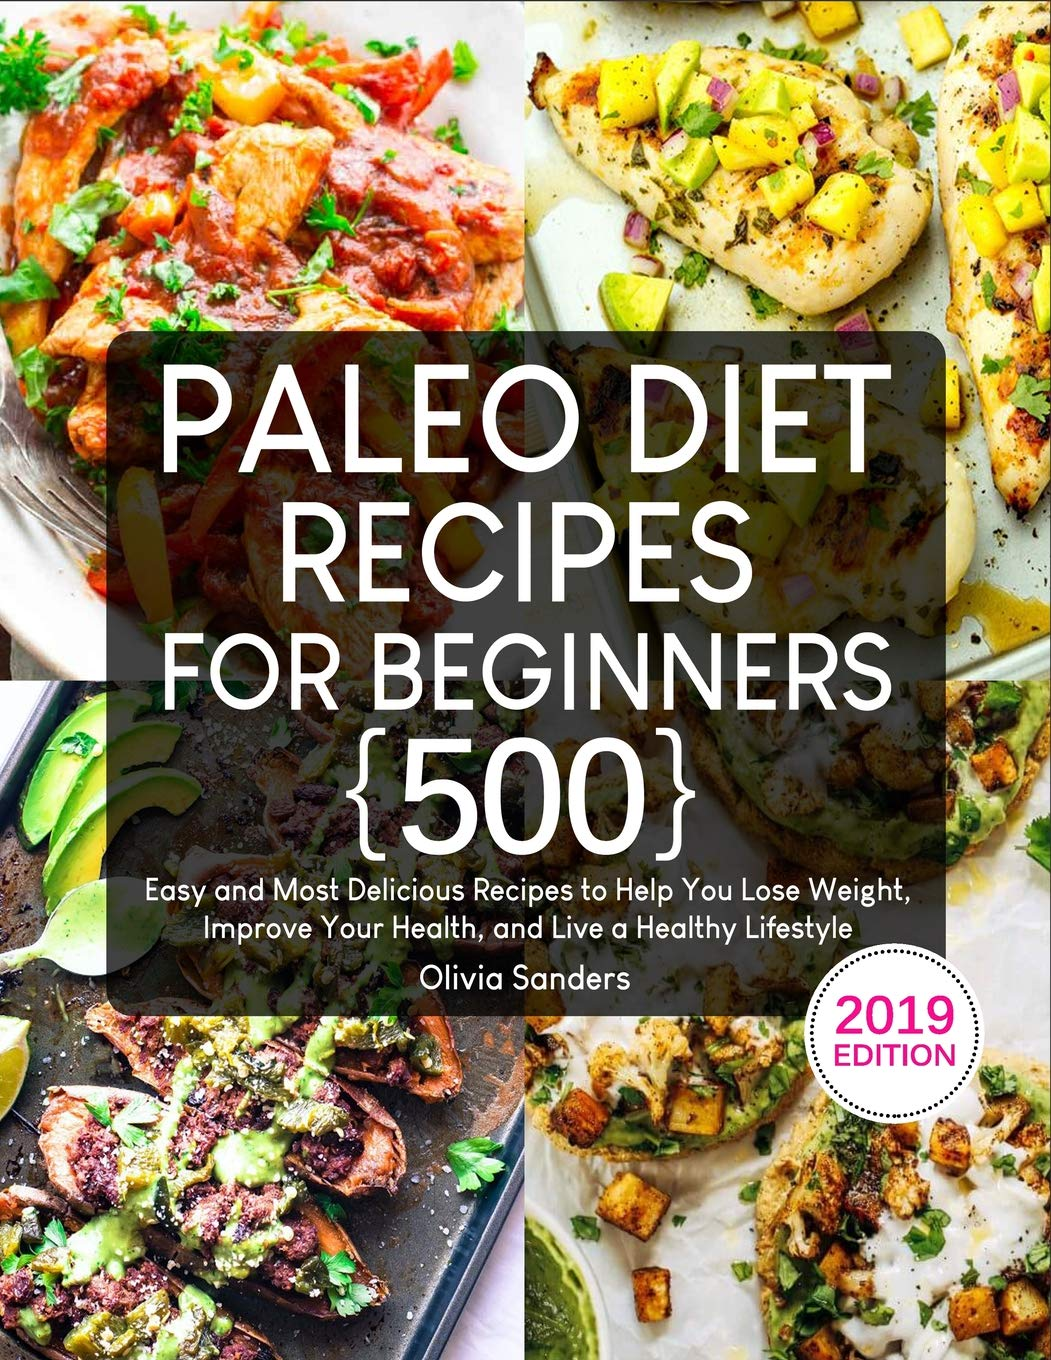 Paleo Diet Recipes Beginners Delicious product image